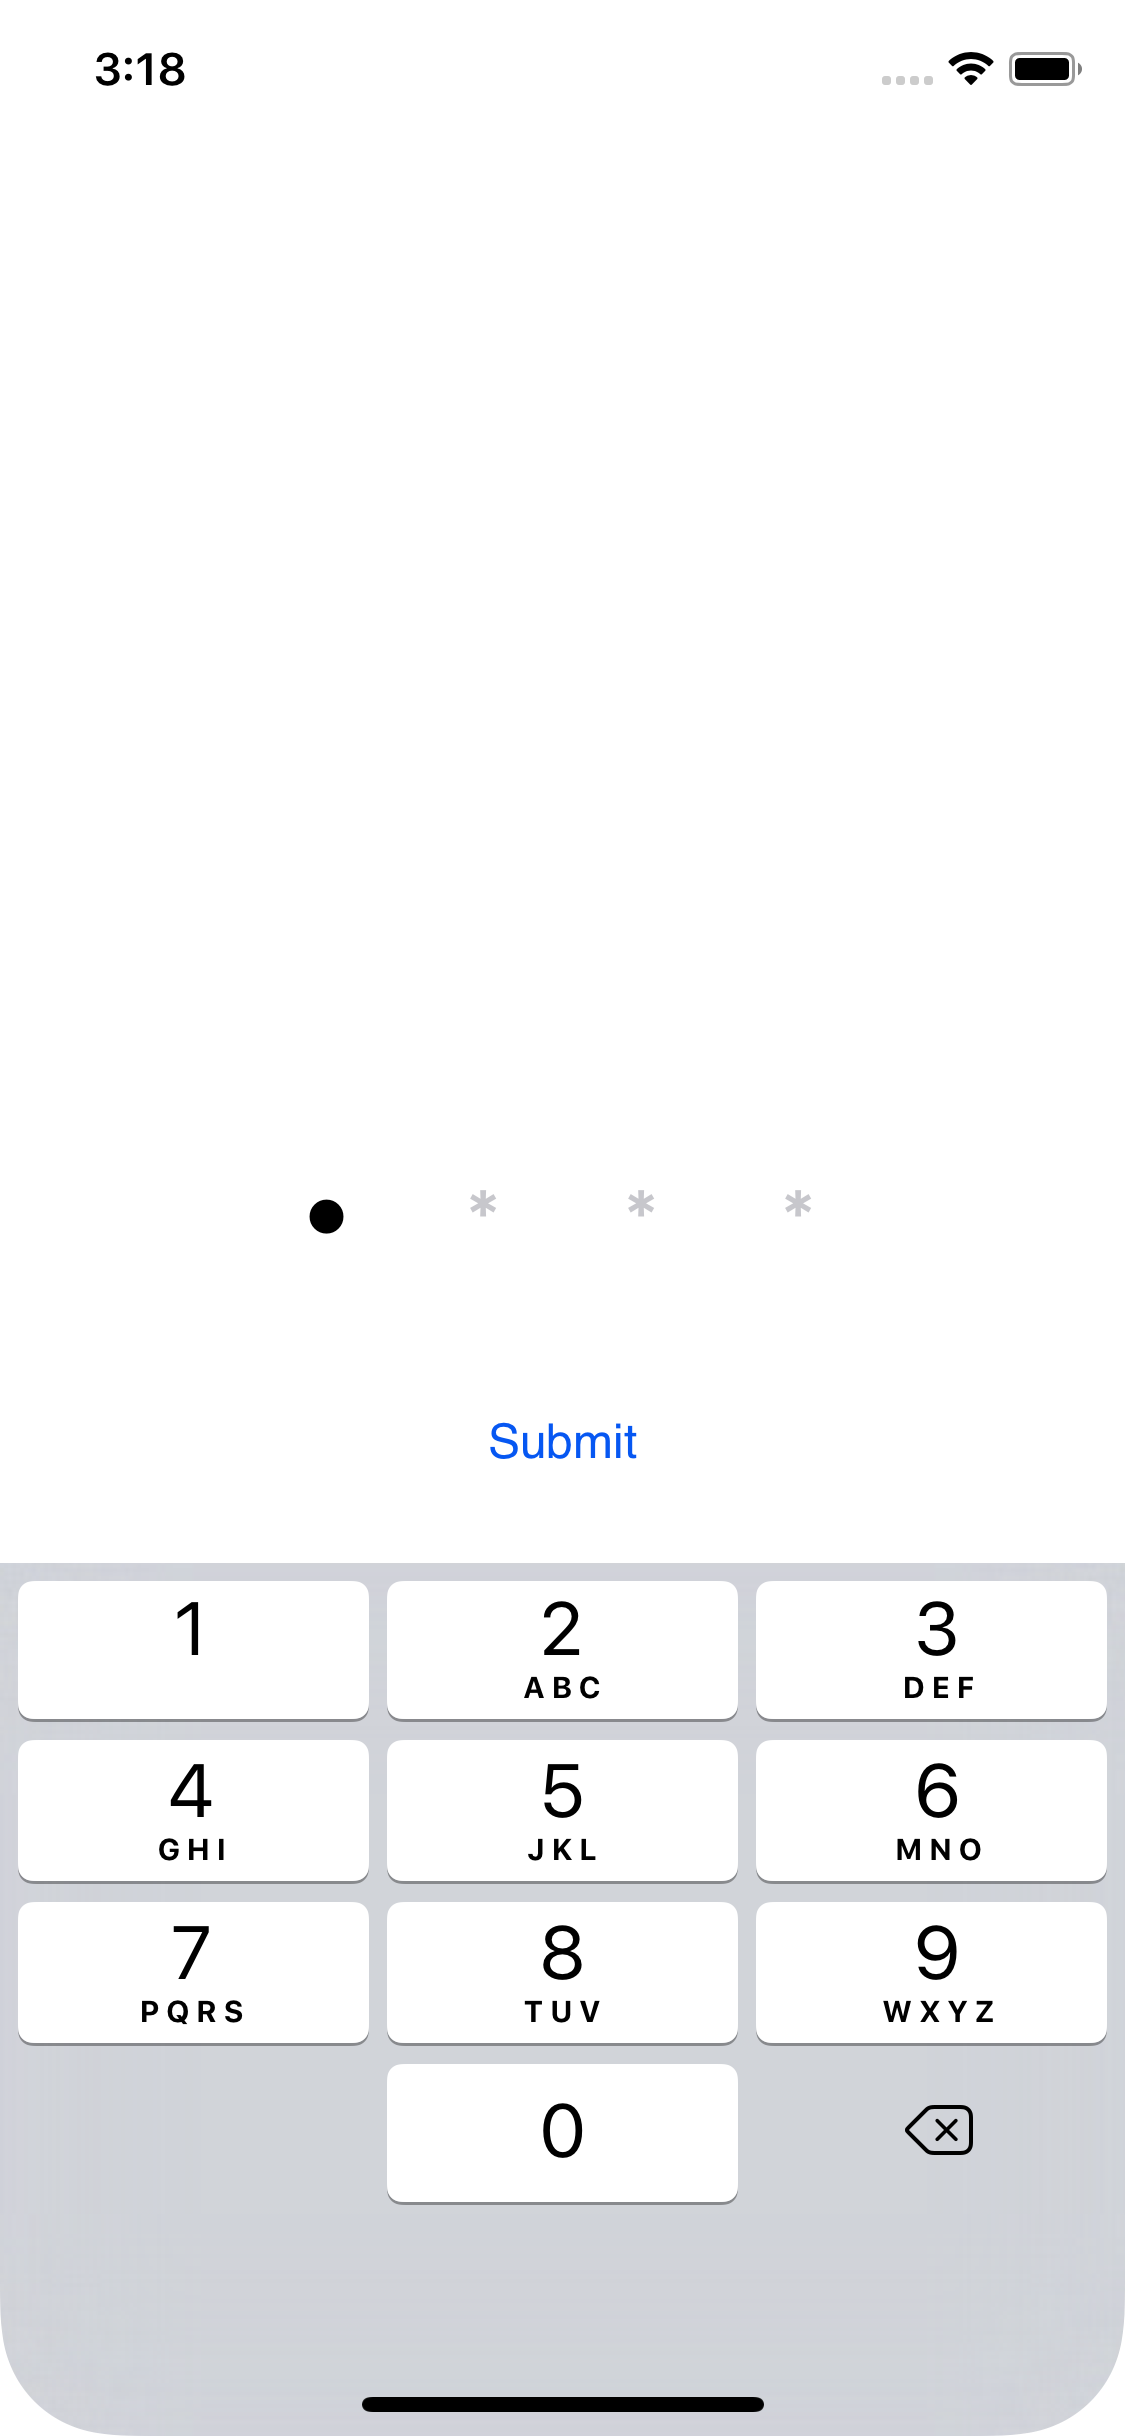 Simulator Screen Shot - iPhone X - 2019-07-02 at 15 18 33